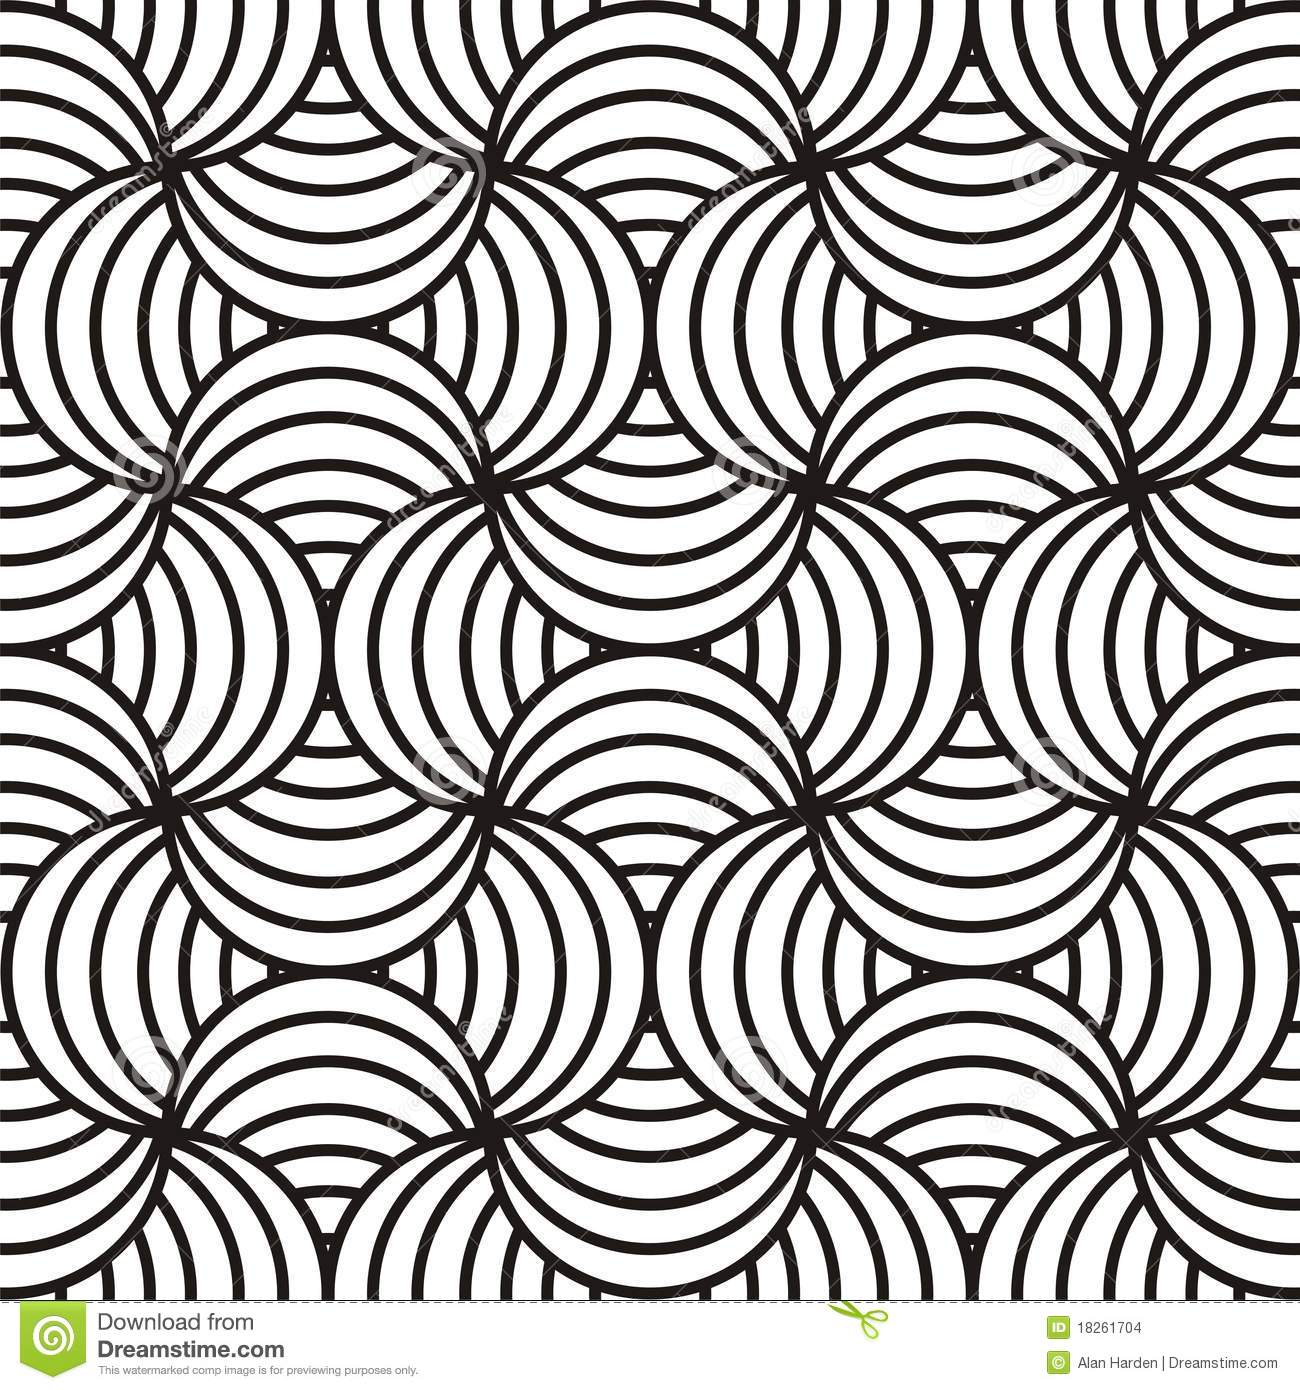 Black white swirling design stock vector illustration of backdrop curve 18261704 - Any design using black and white ...